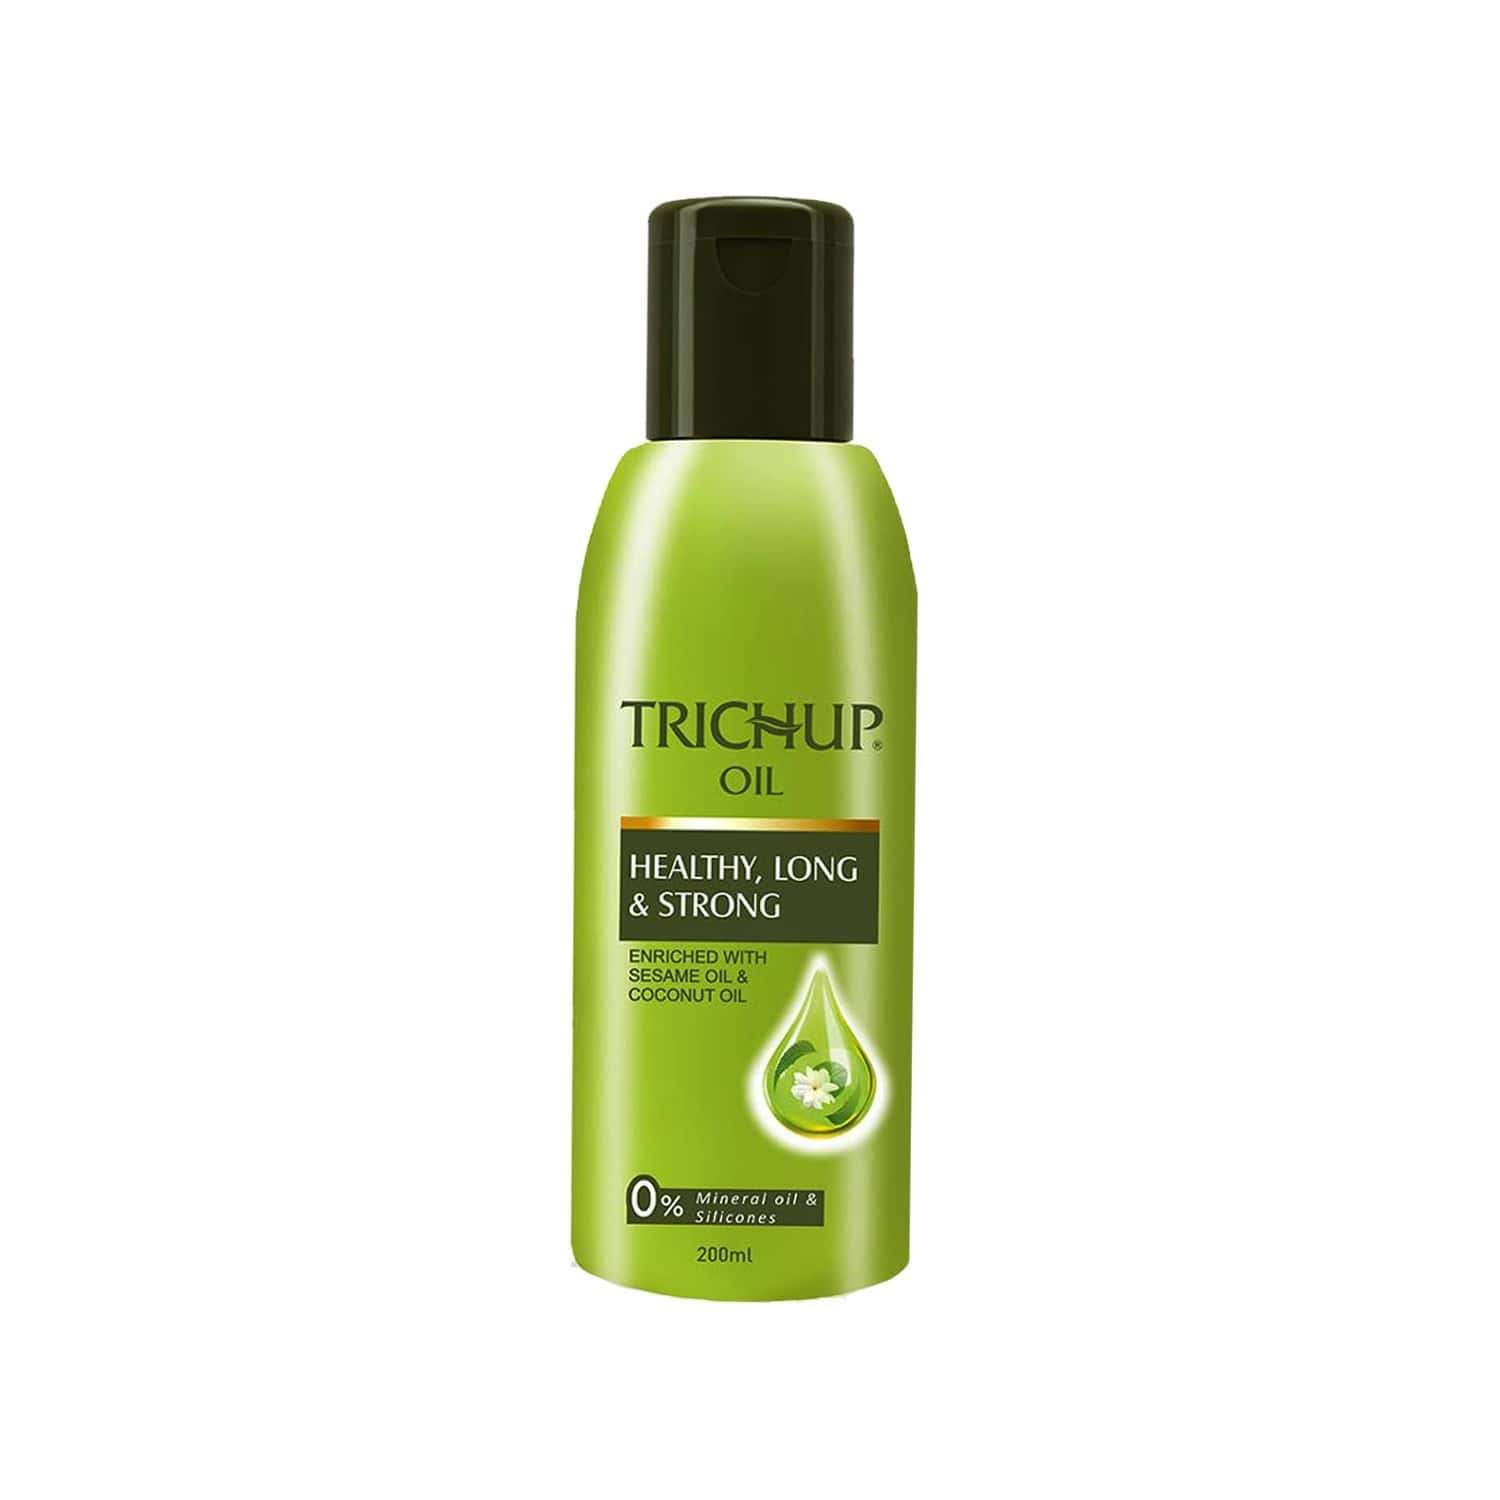 Trichup Healthy Long & Strong Oil - 200 Ml